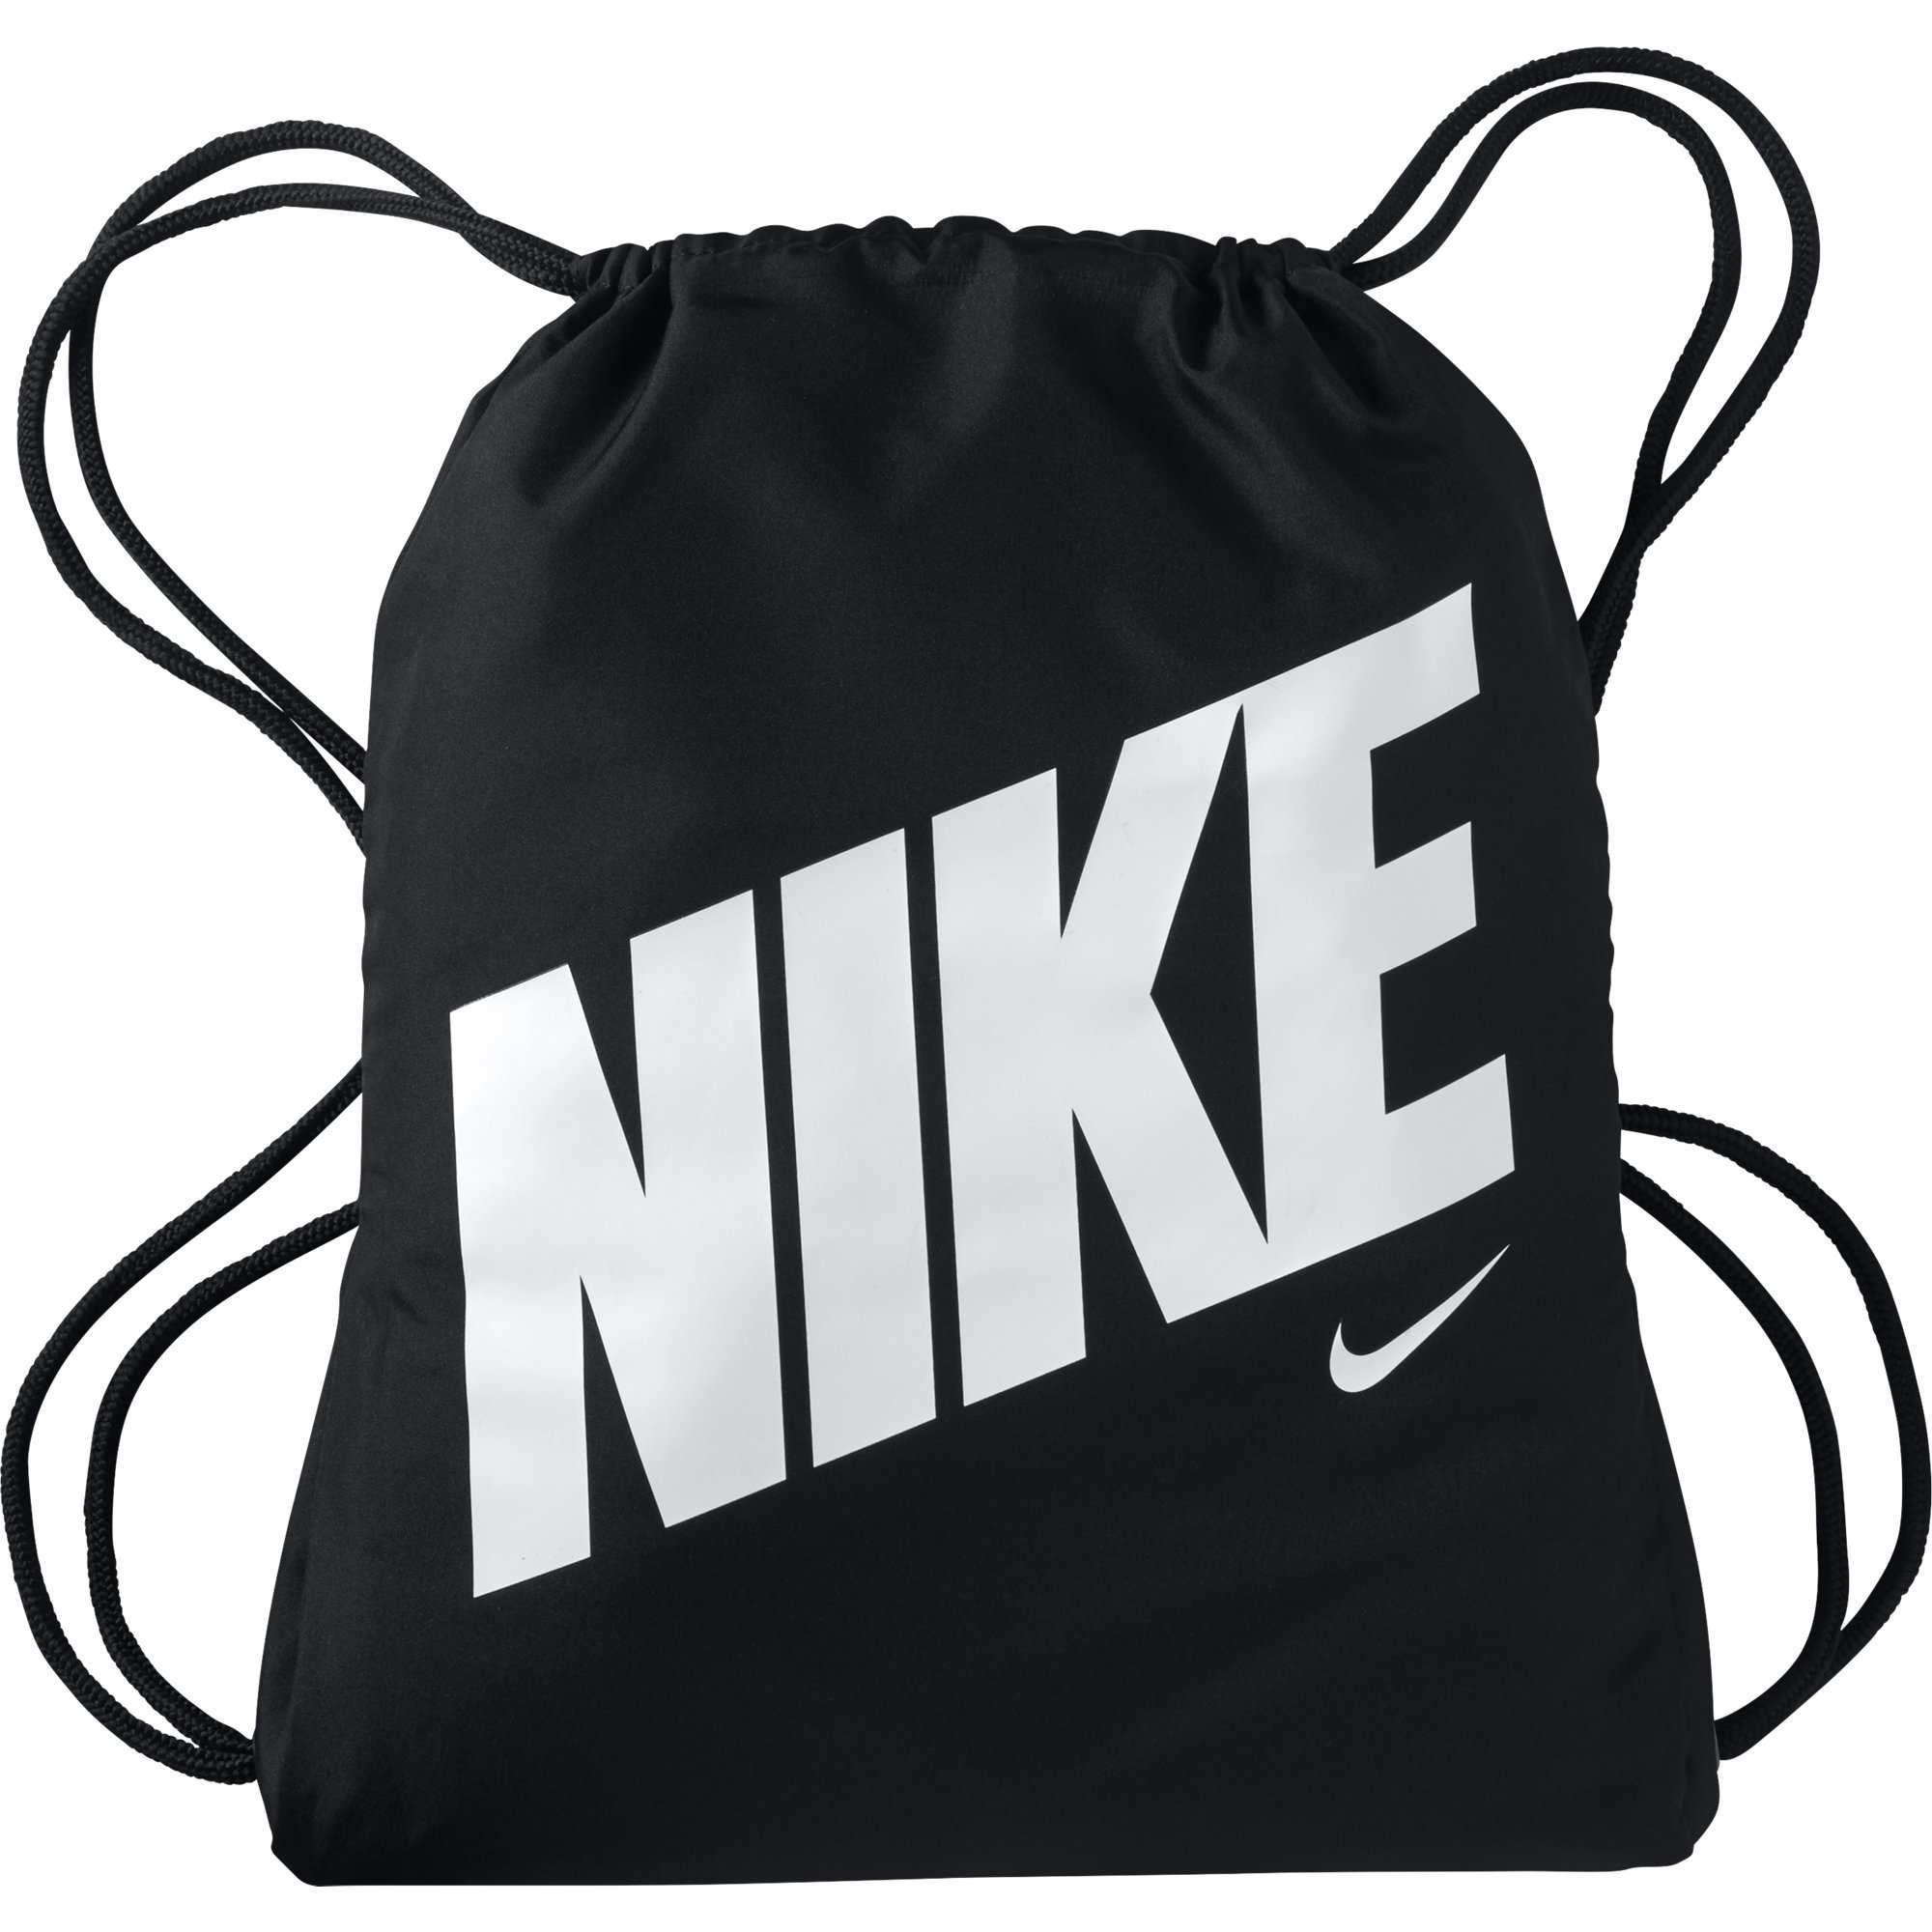 NIKE Kids' Graphic Gym Sack, Black/Black/White, One Size by Nike (Image #1)